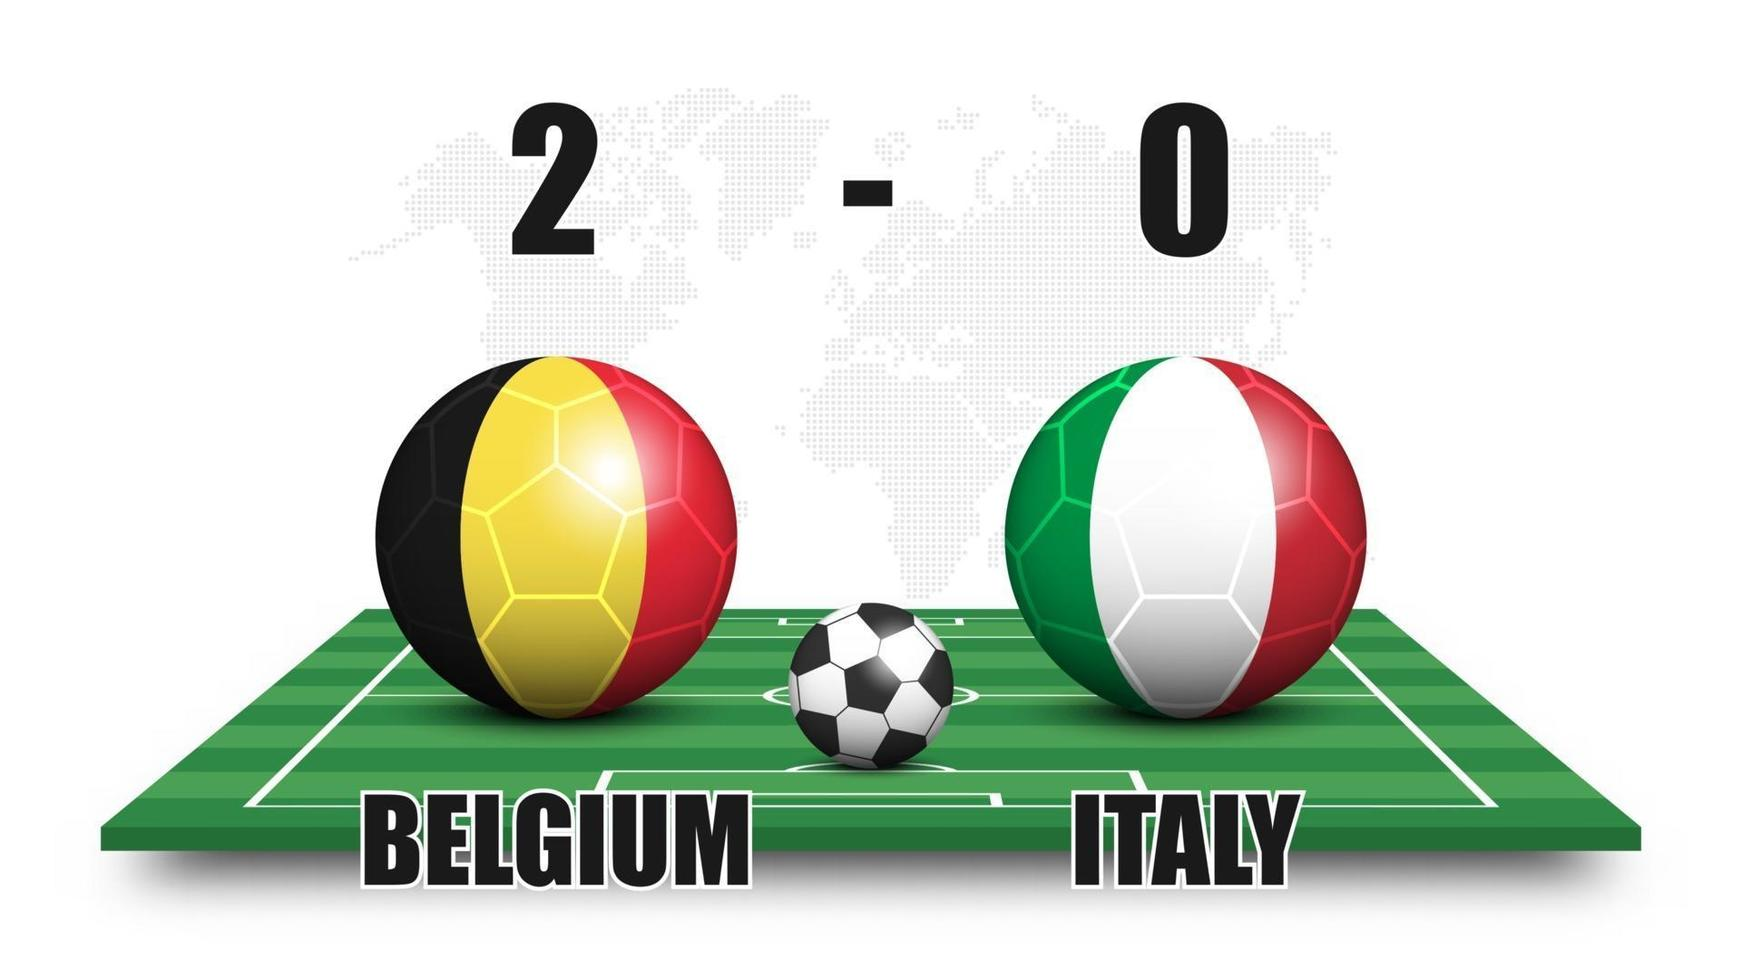 Belgium vs Italy. Soccer ball with national flag pattern on perspective football field. Dotted world map background. Football match result and scoreboard. Sport cup tournament. 3D vector design.